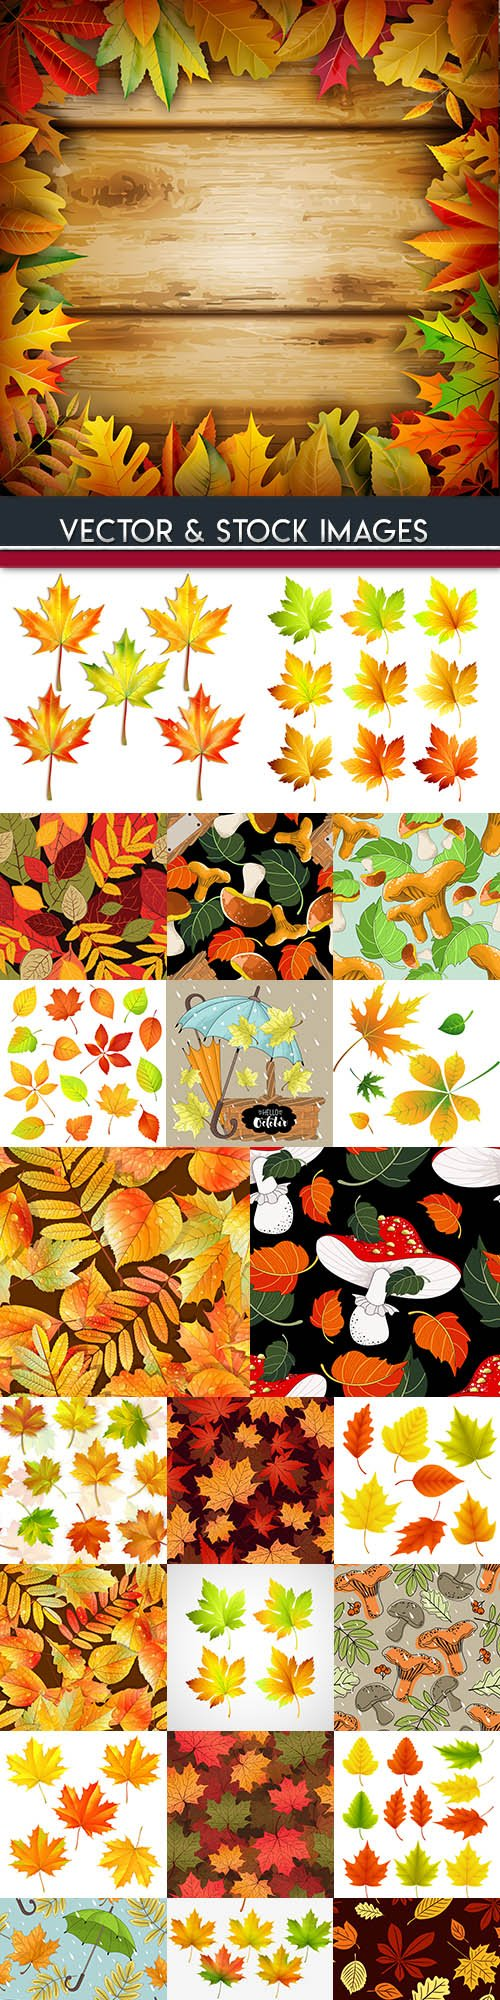 Autumn leaves and mushrooms background colourful